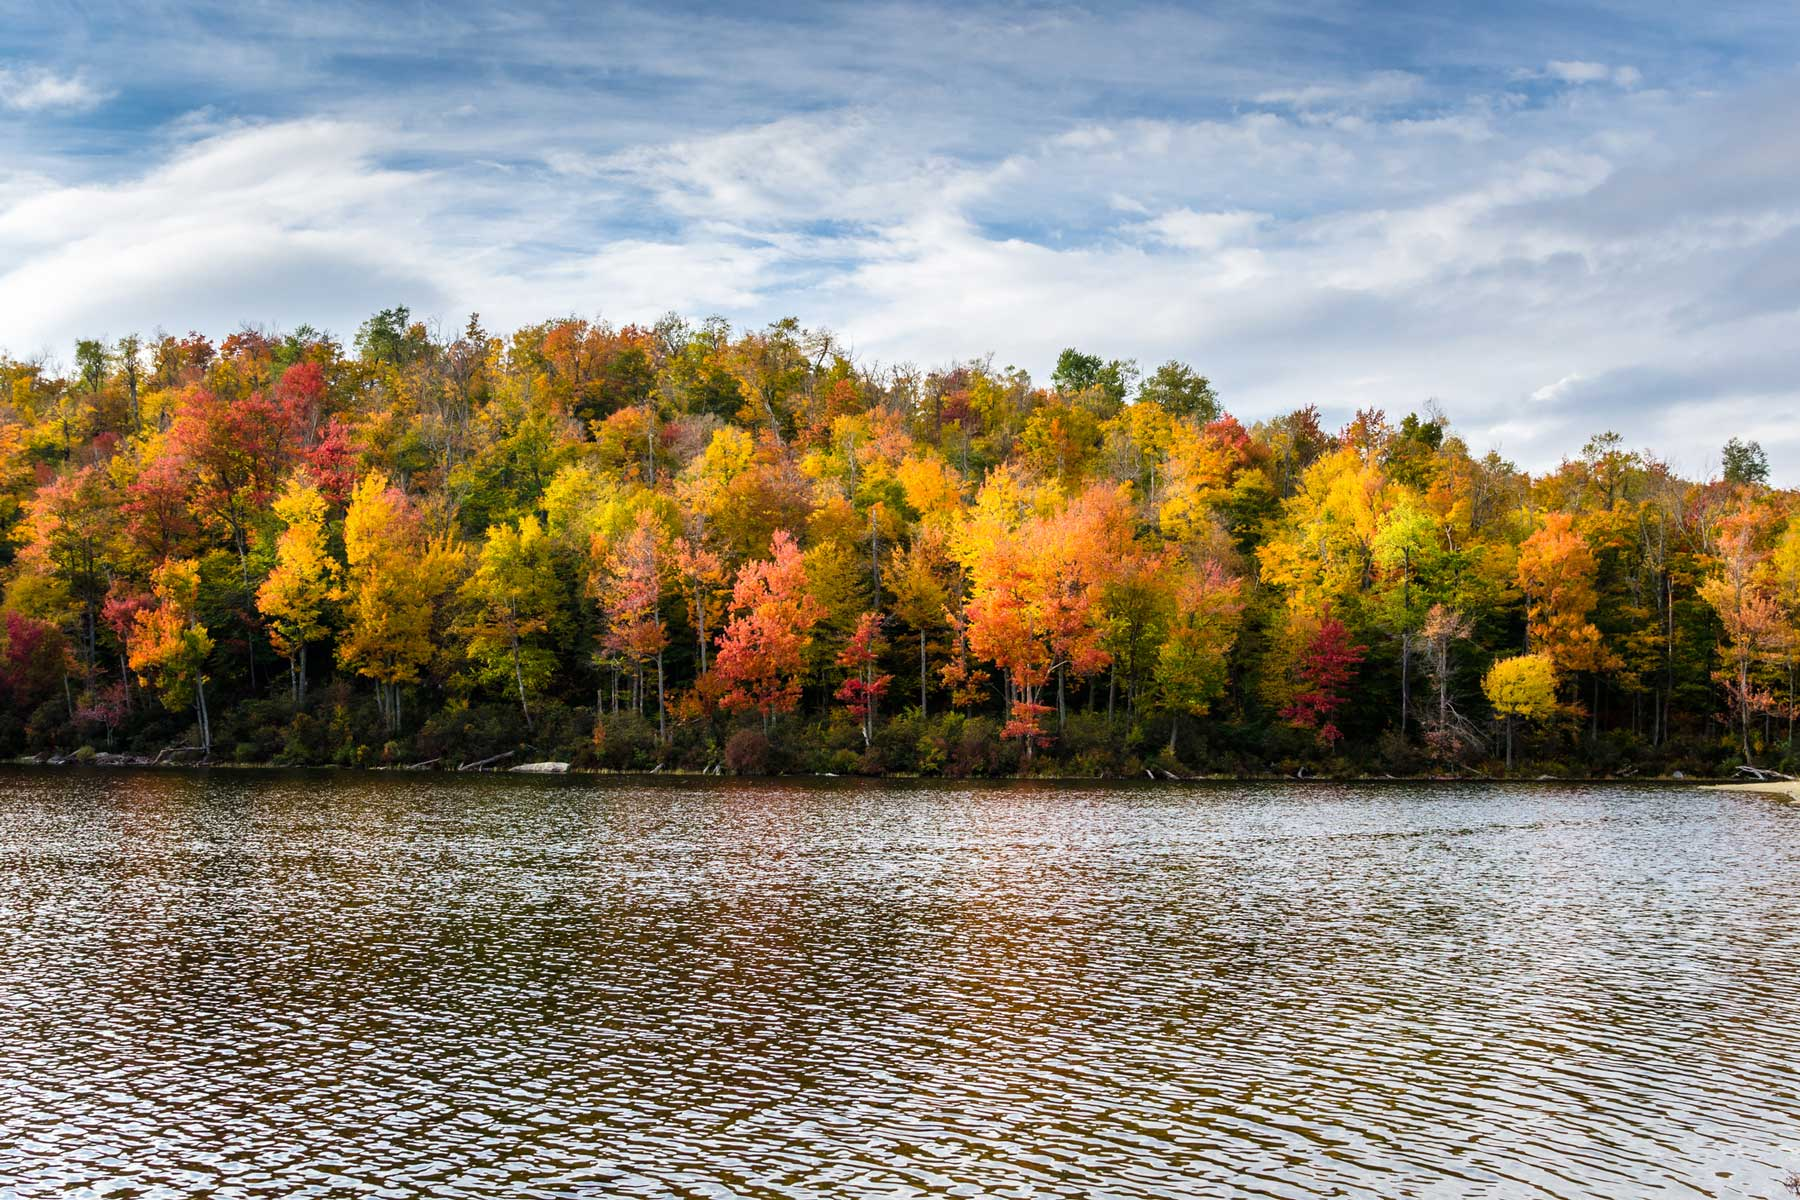 Wooded Shores of a Mountain Lake in Autumn. Vibrant Fall Foliage.